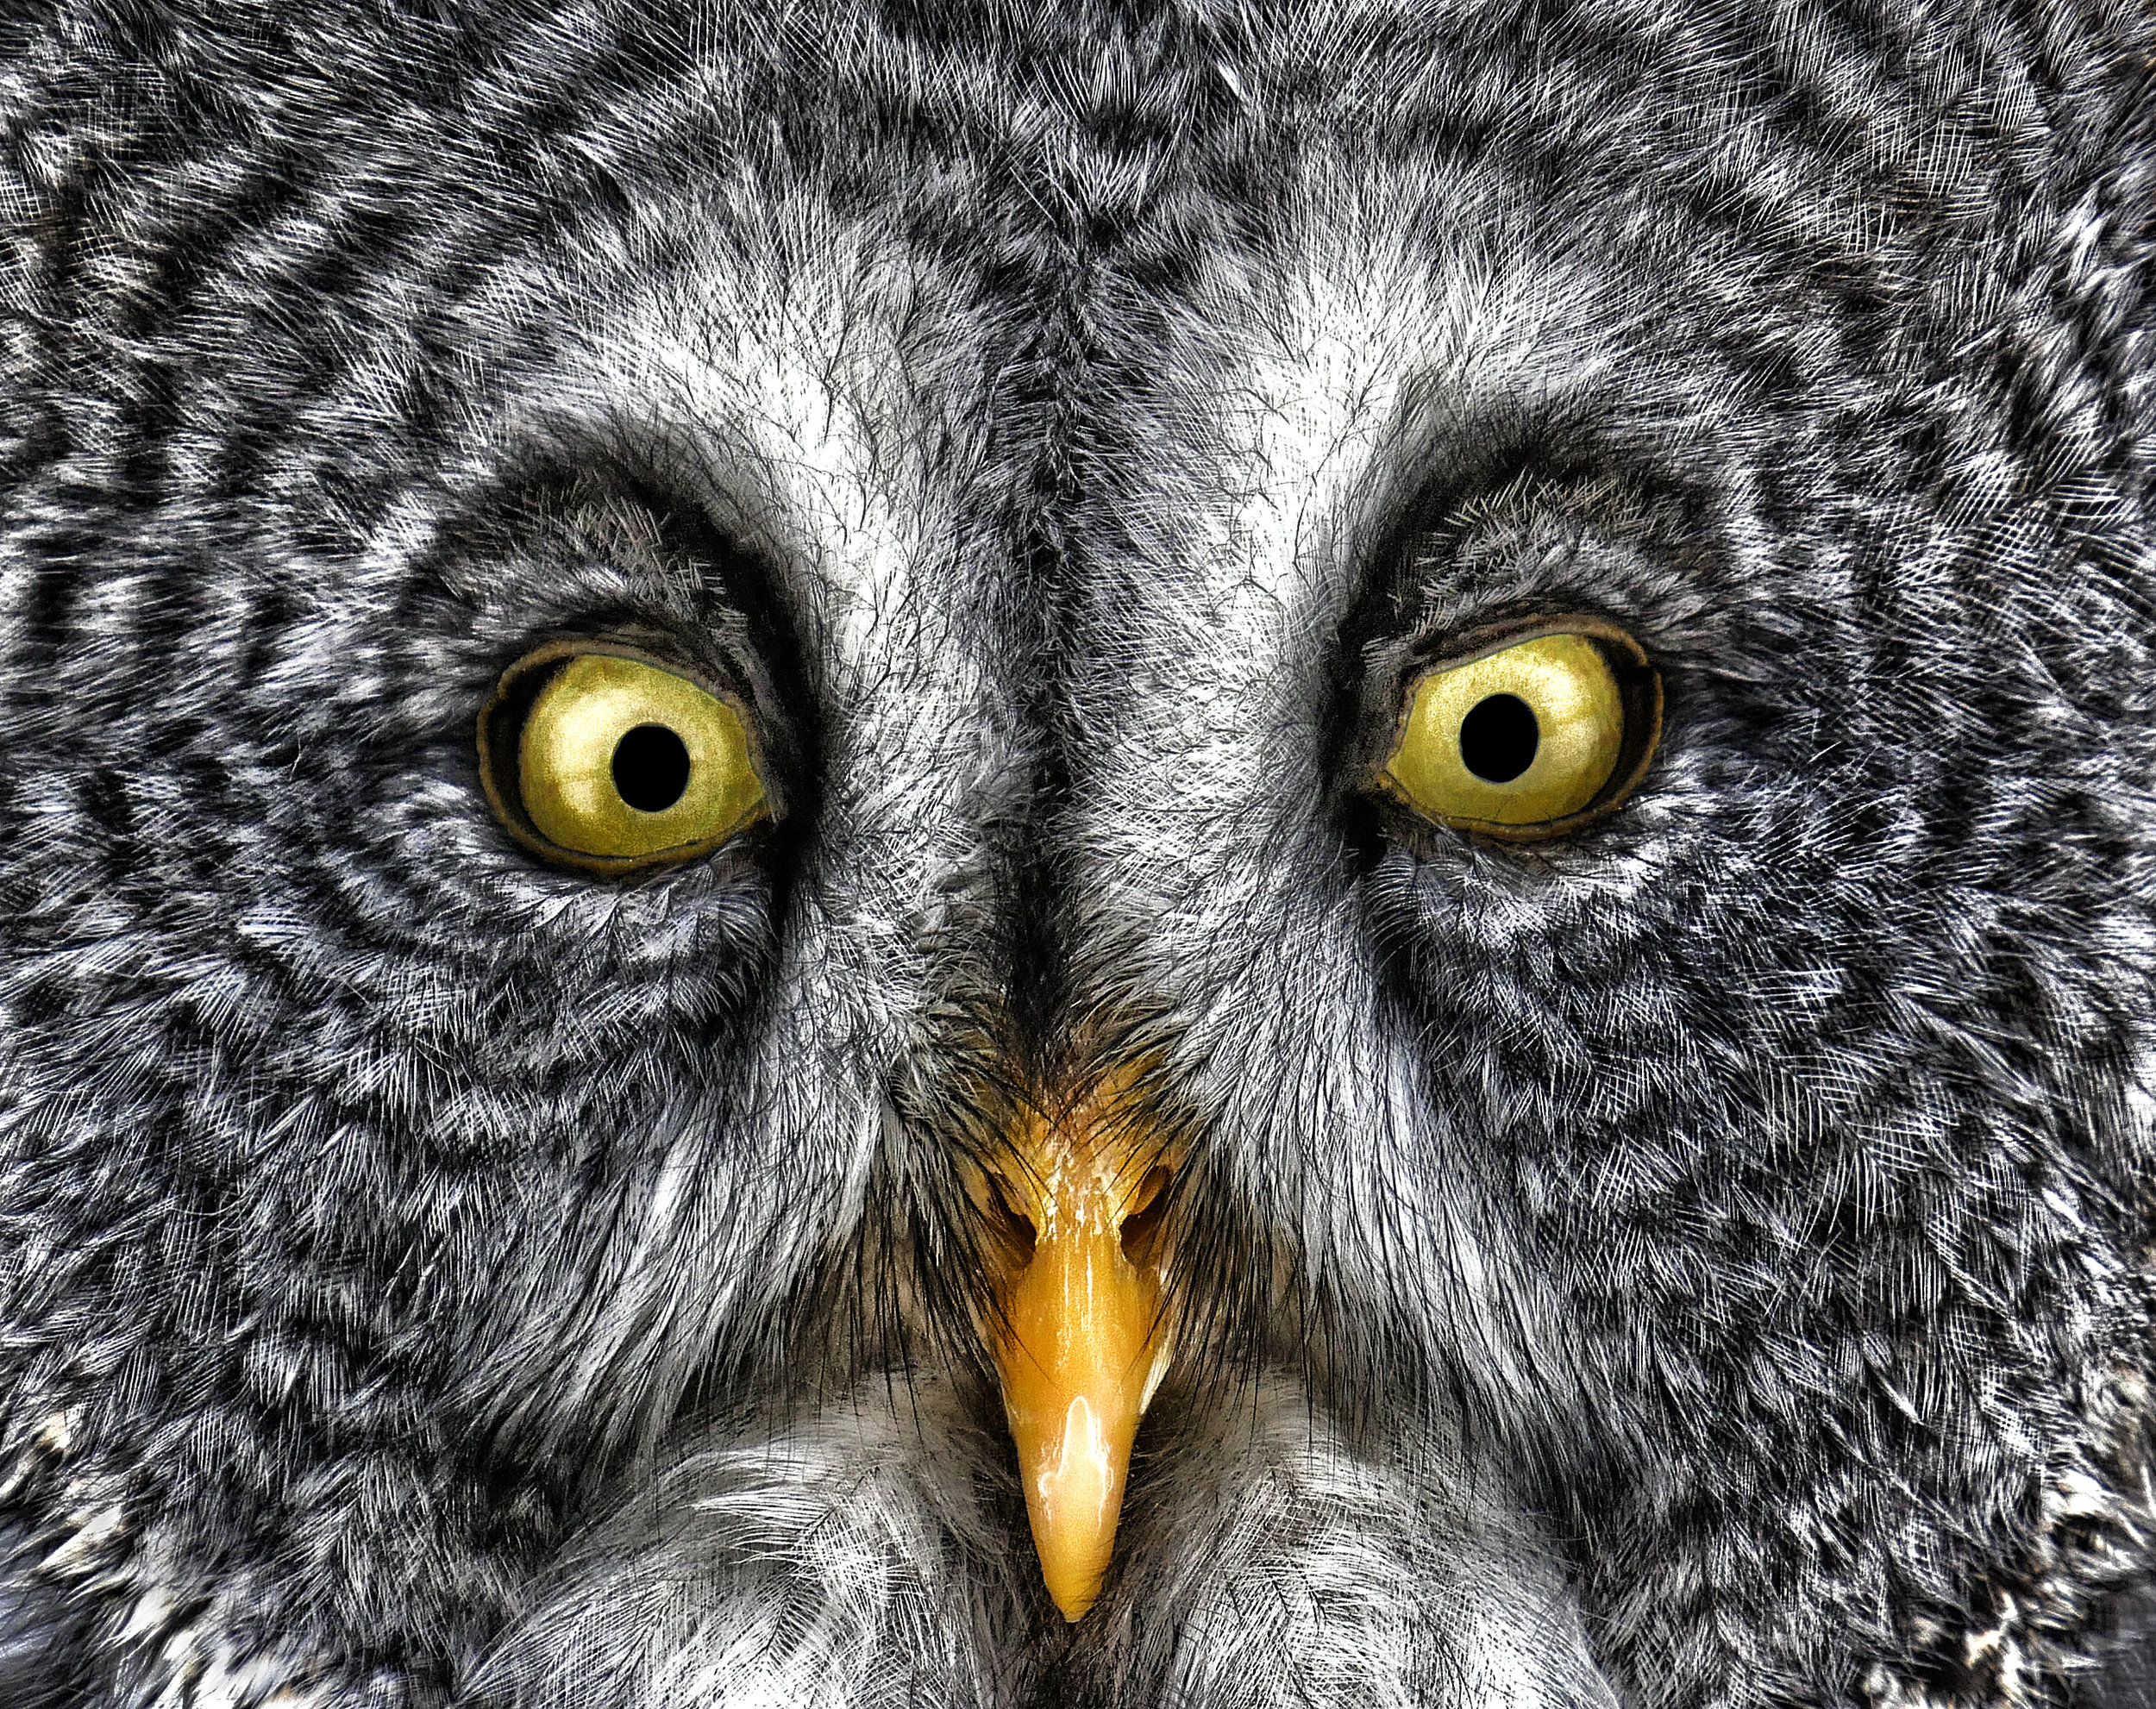 Great Grey Owl - ( Static Photos Only )The great grey owl or great gray owl is a very large owl, documented as the world's largest species of owl by length. It is distributed across the Northern Hemisphere.